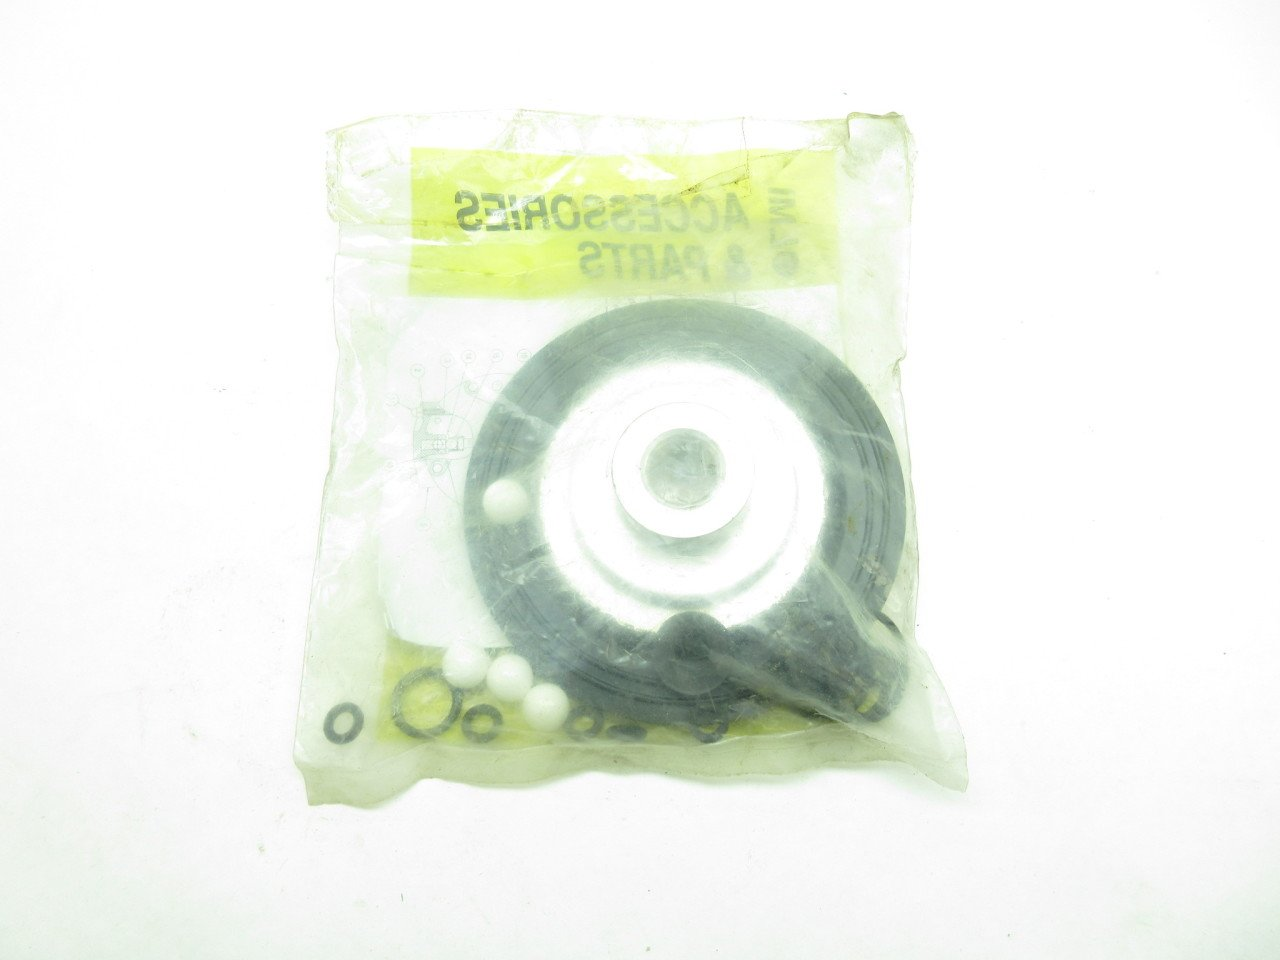 NEW LMI MILTON ROY SP-44 PUMP SPARE PARTS REPAIR KIT D603594